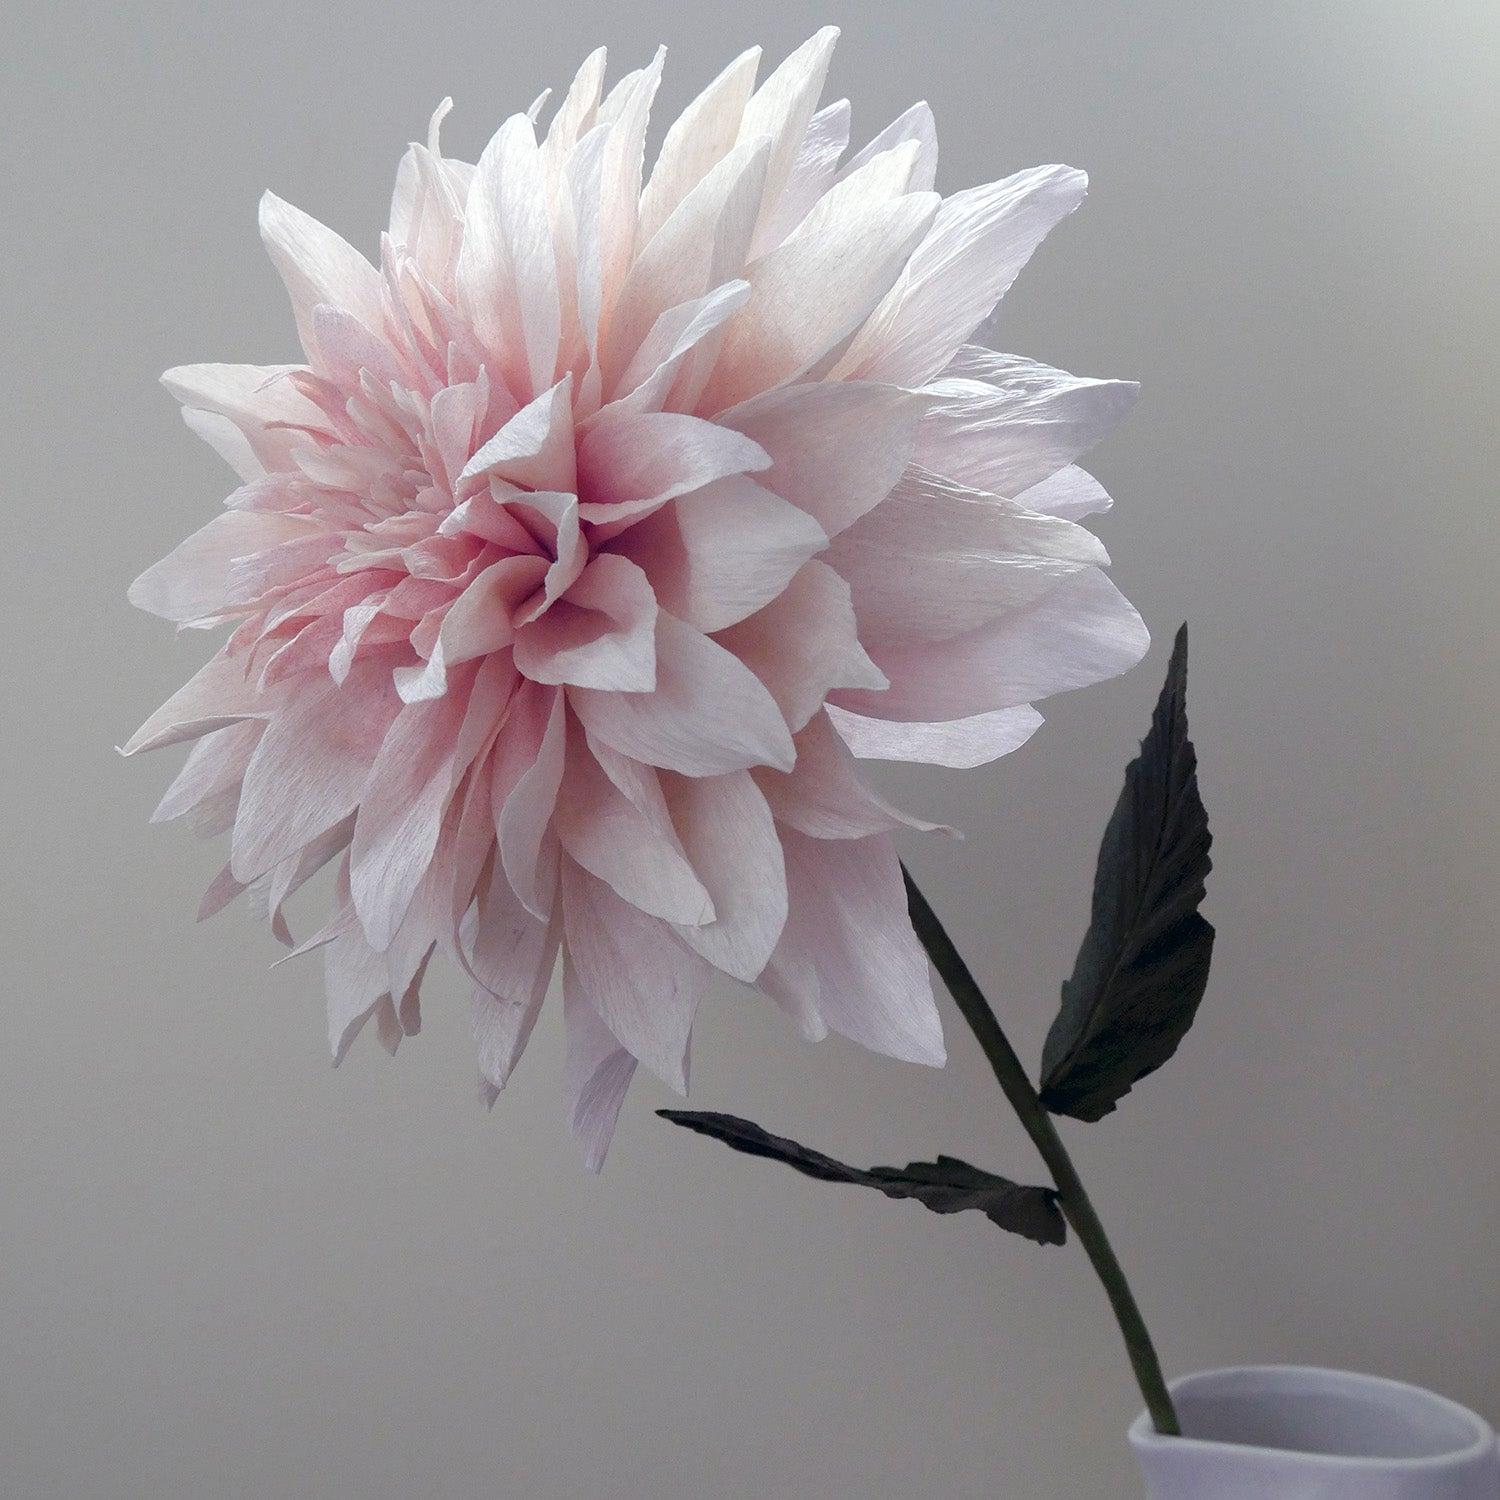 Dinner Plate Dahlia Flower from Italian Crepe Paper